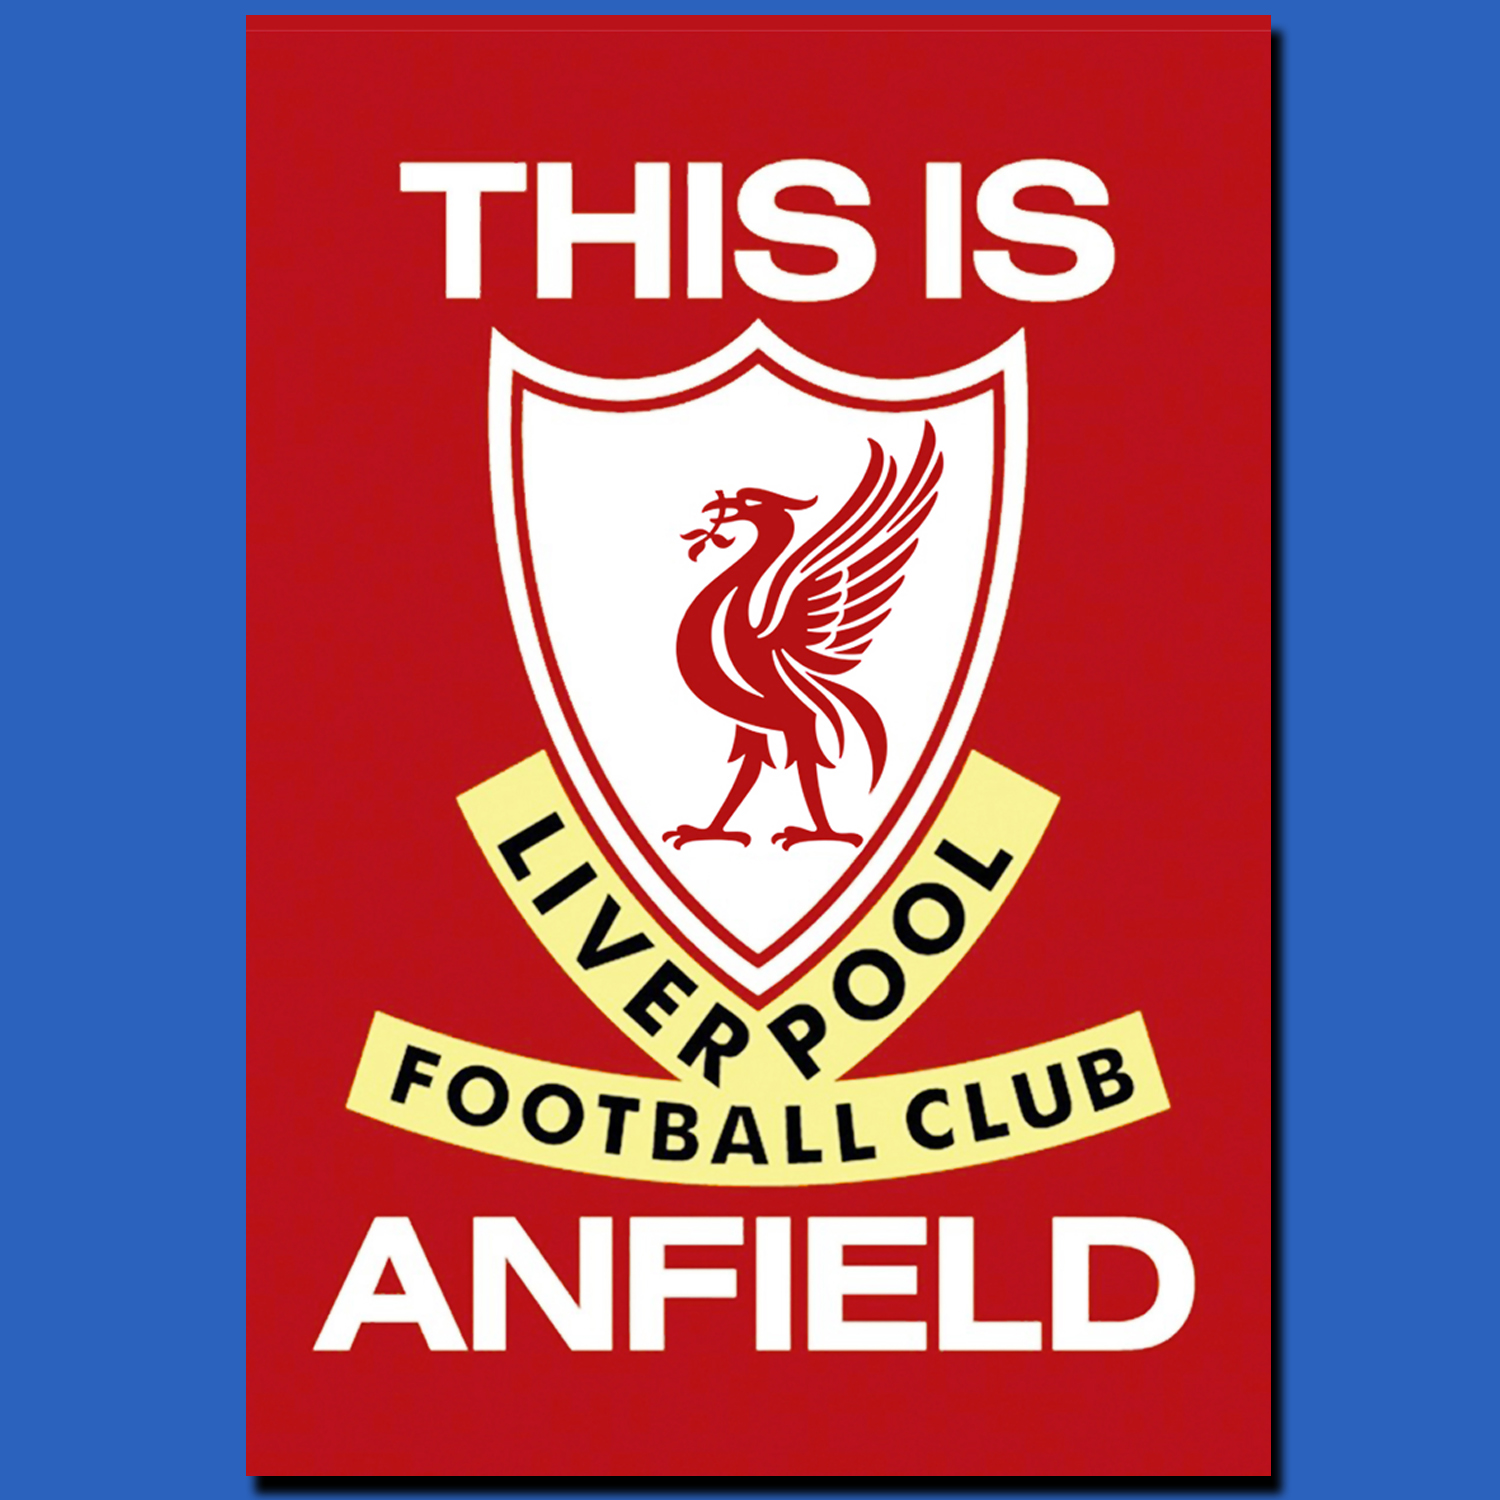 POSTER, POSTER CUSTOM THIS IS ANFIELD (FOOTBALL CLUB LIVERPOOL)